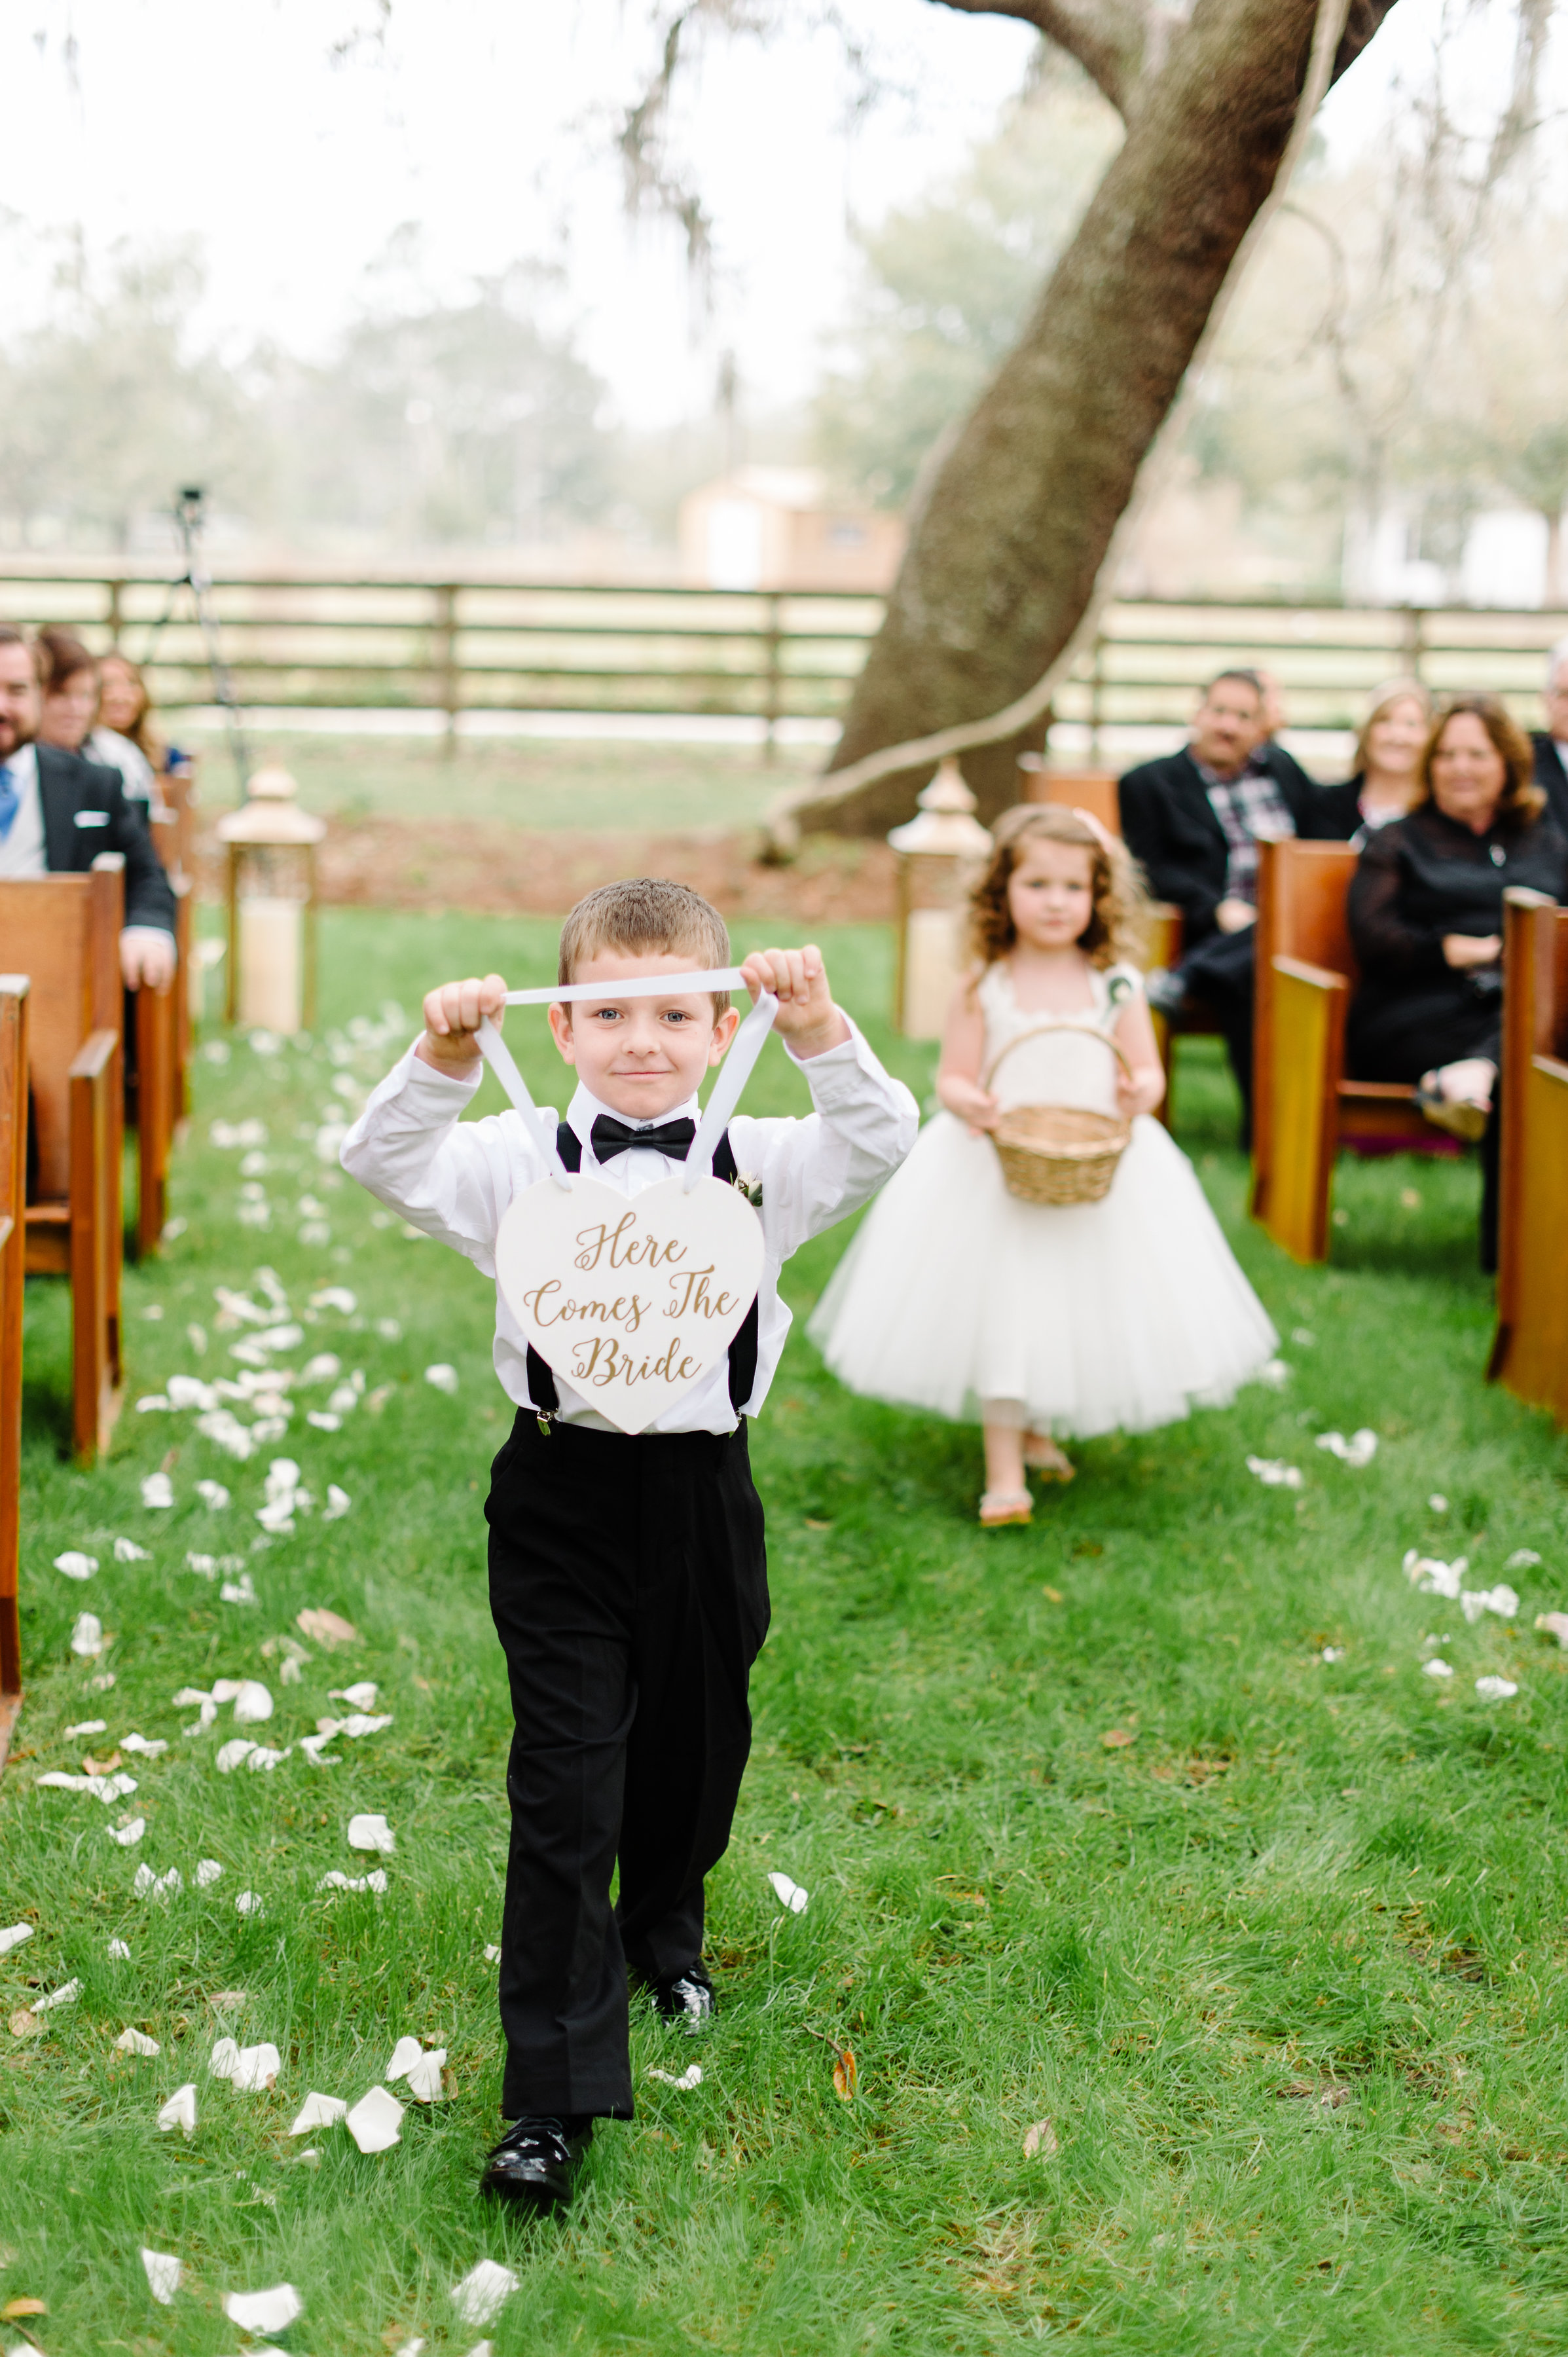 Here comes the bride - Ring bearer sign